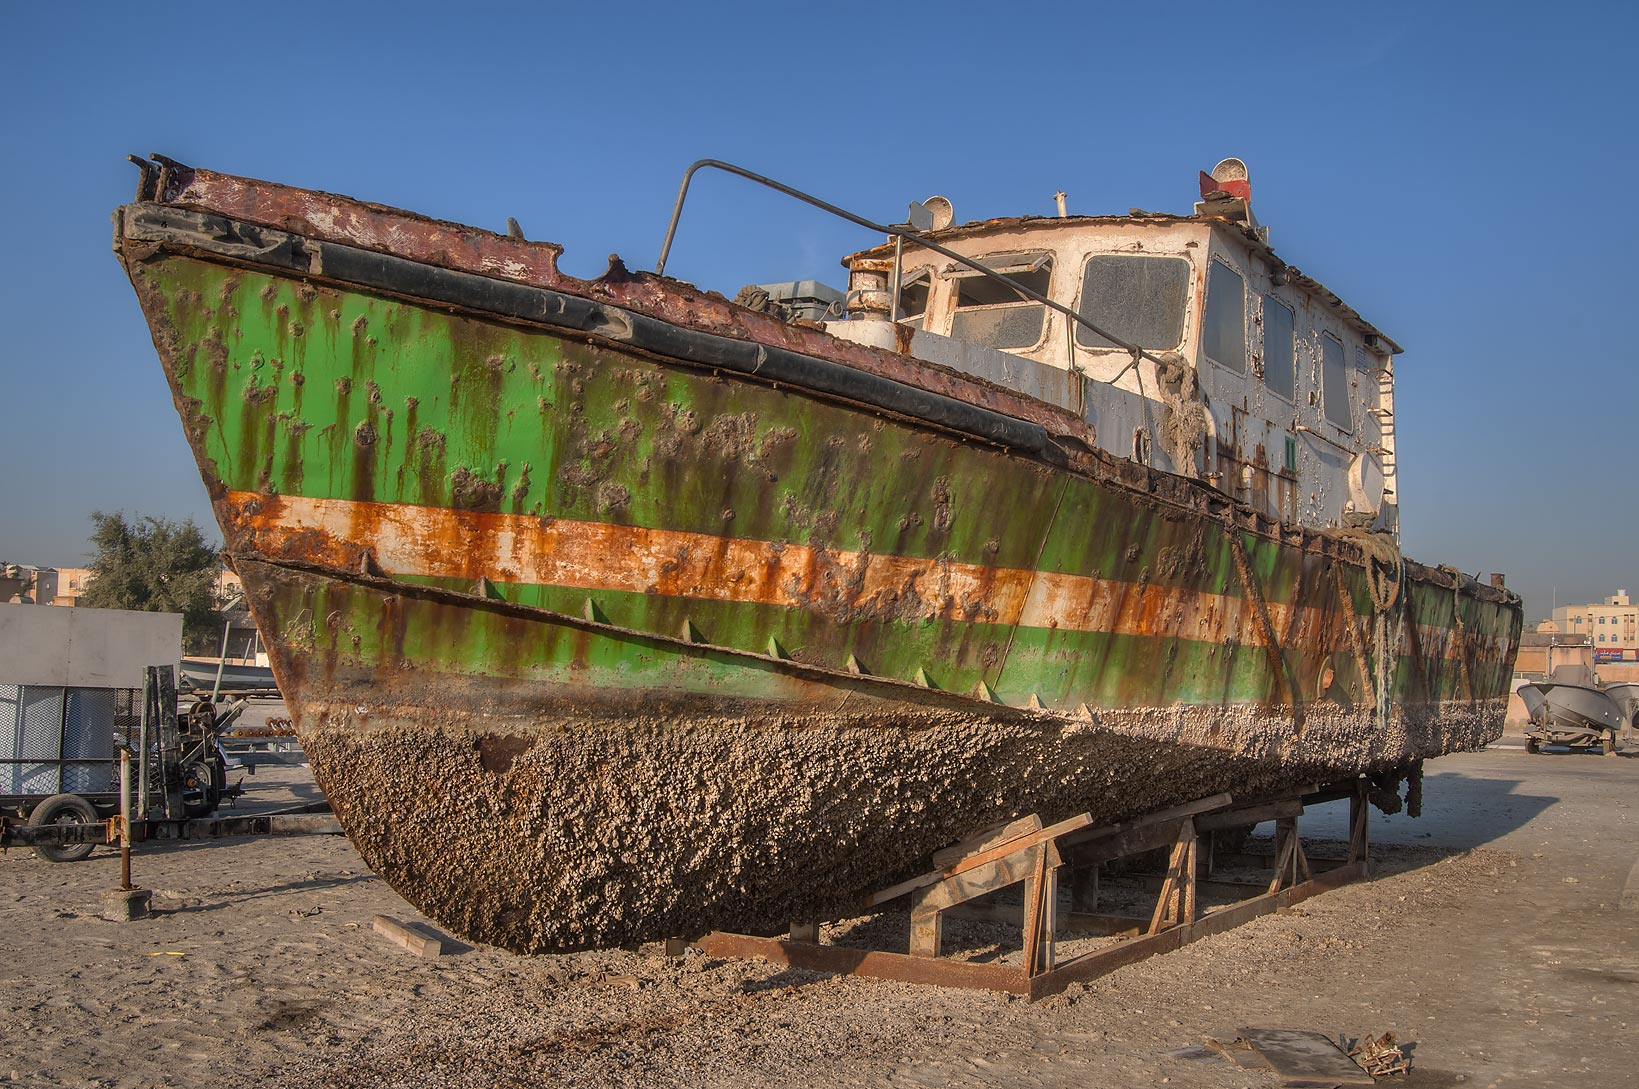 Photo 1174 12 old iron fishing boat in a shipyard in al for Old fishing boat